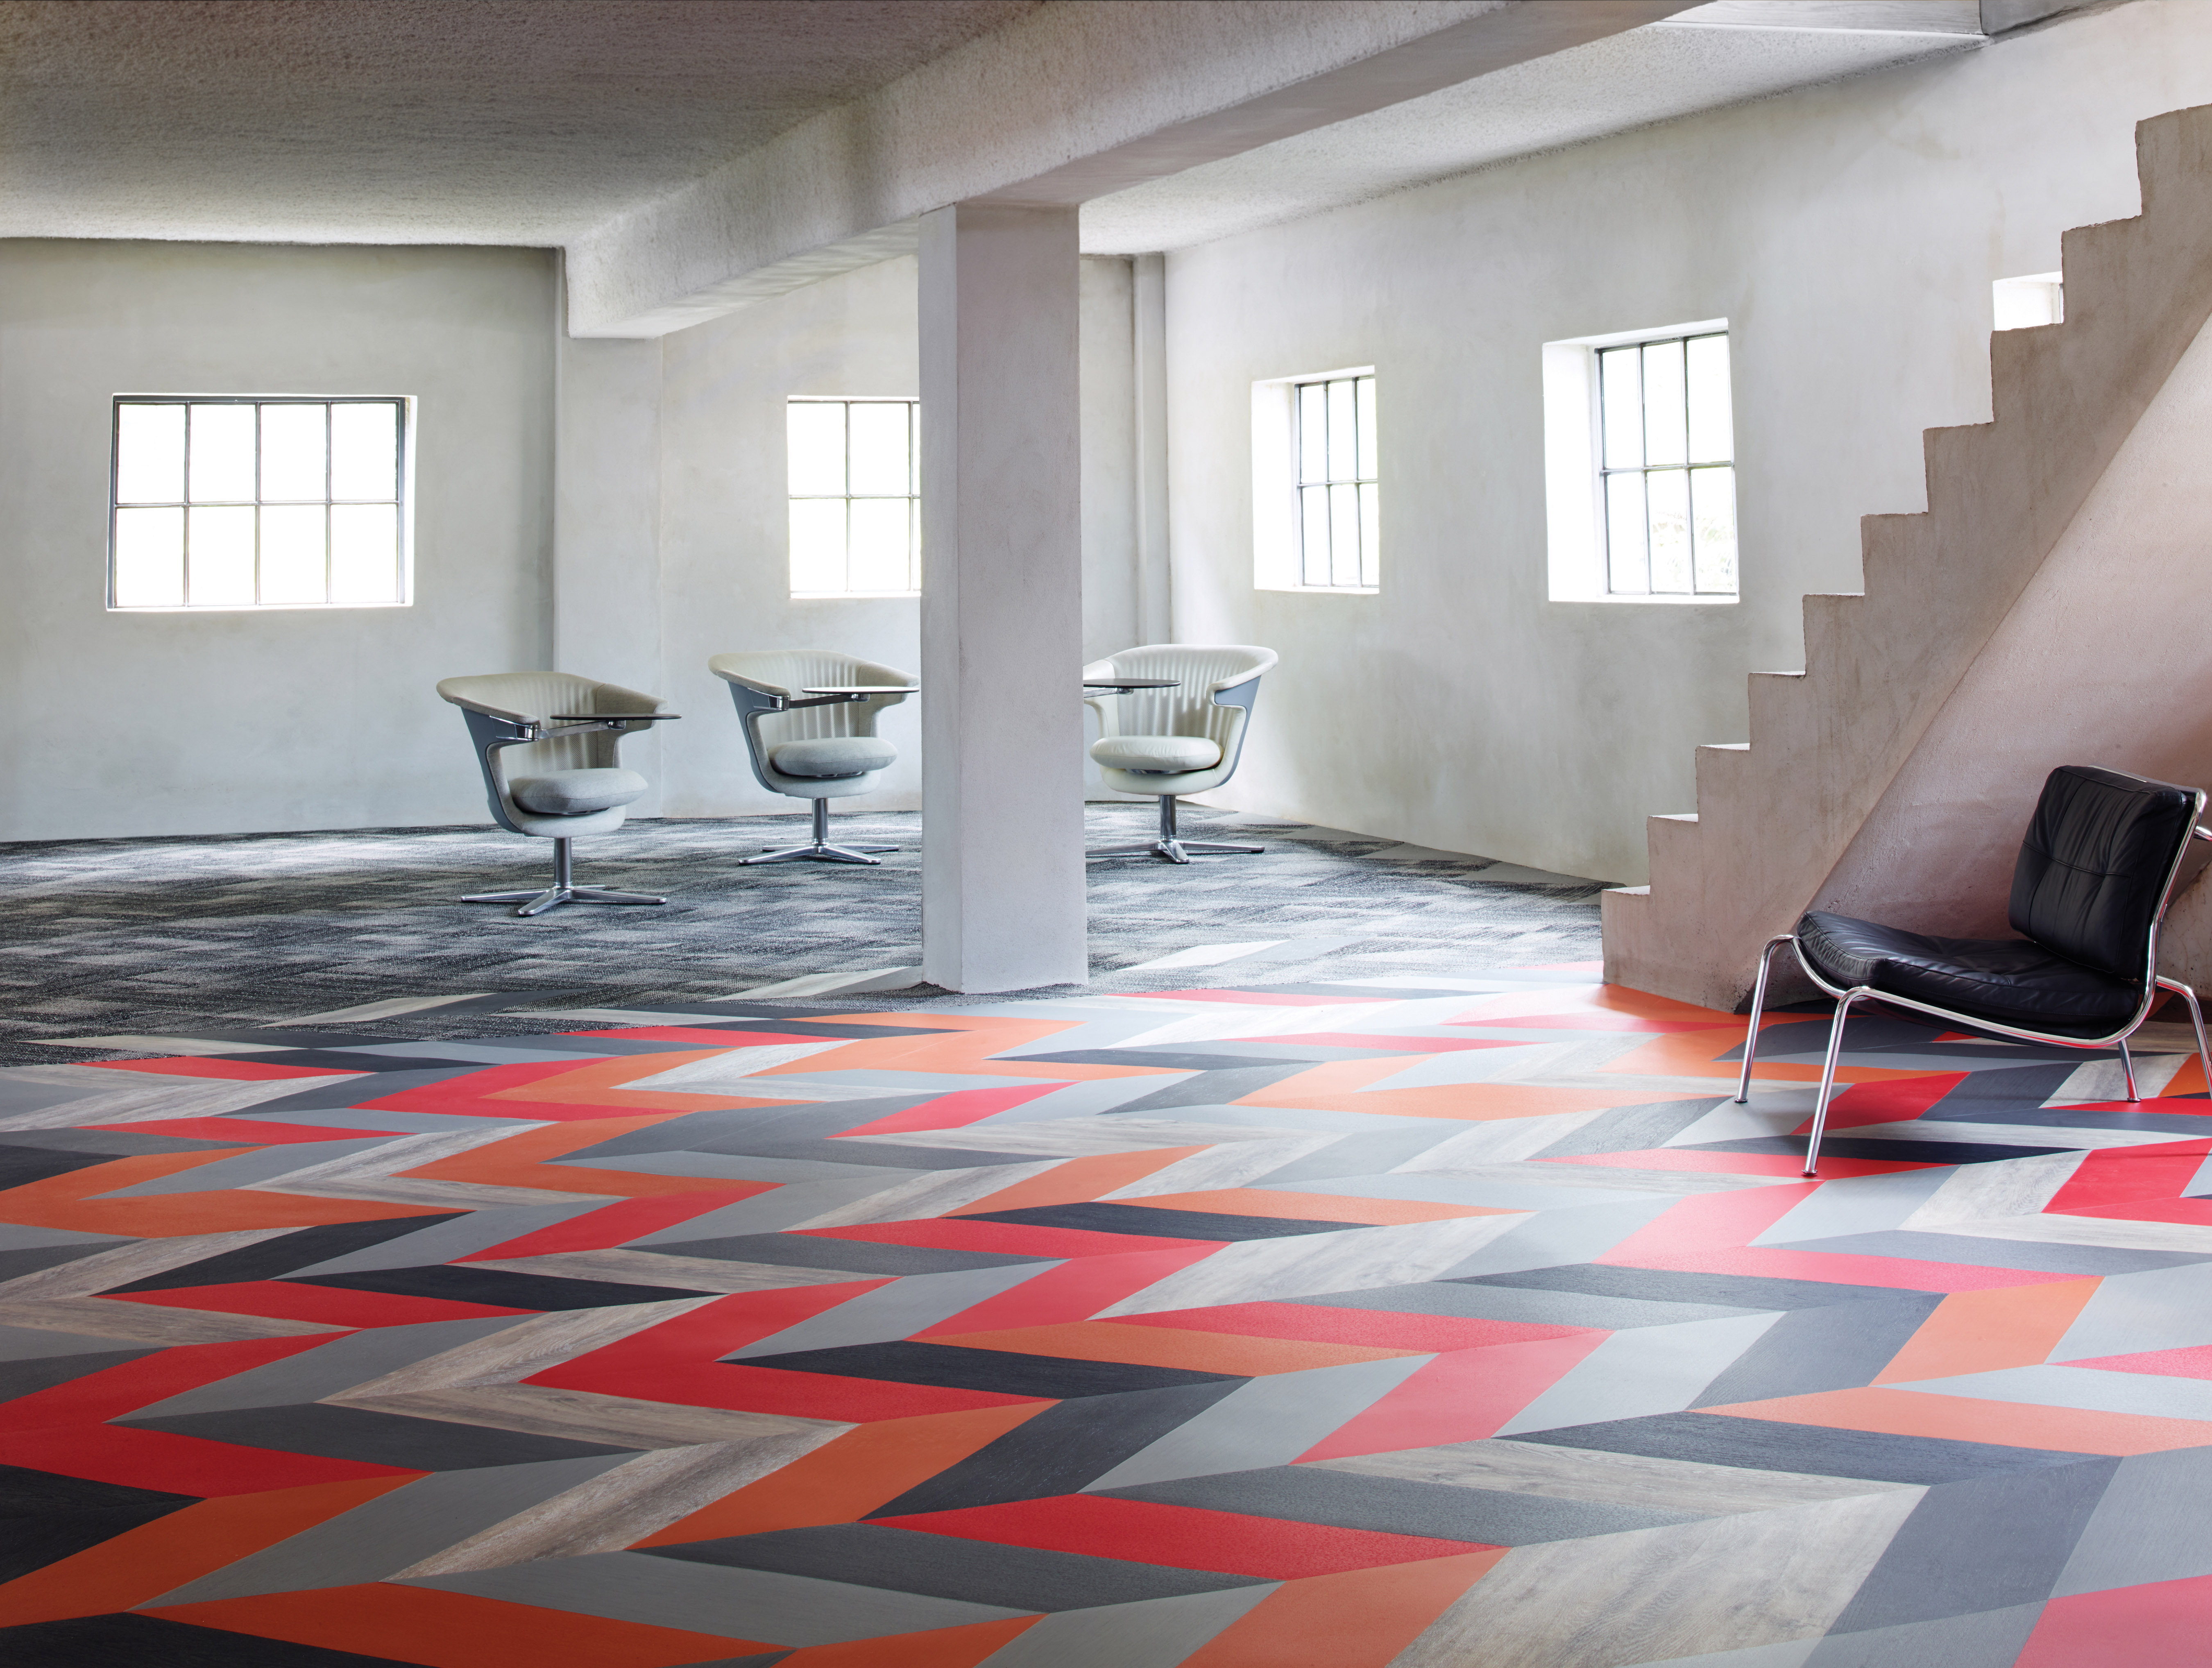 Patcraft S Mixed Materials Collection Provides